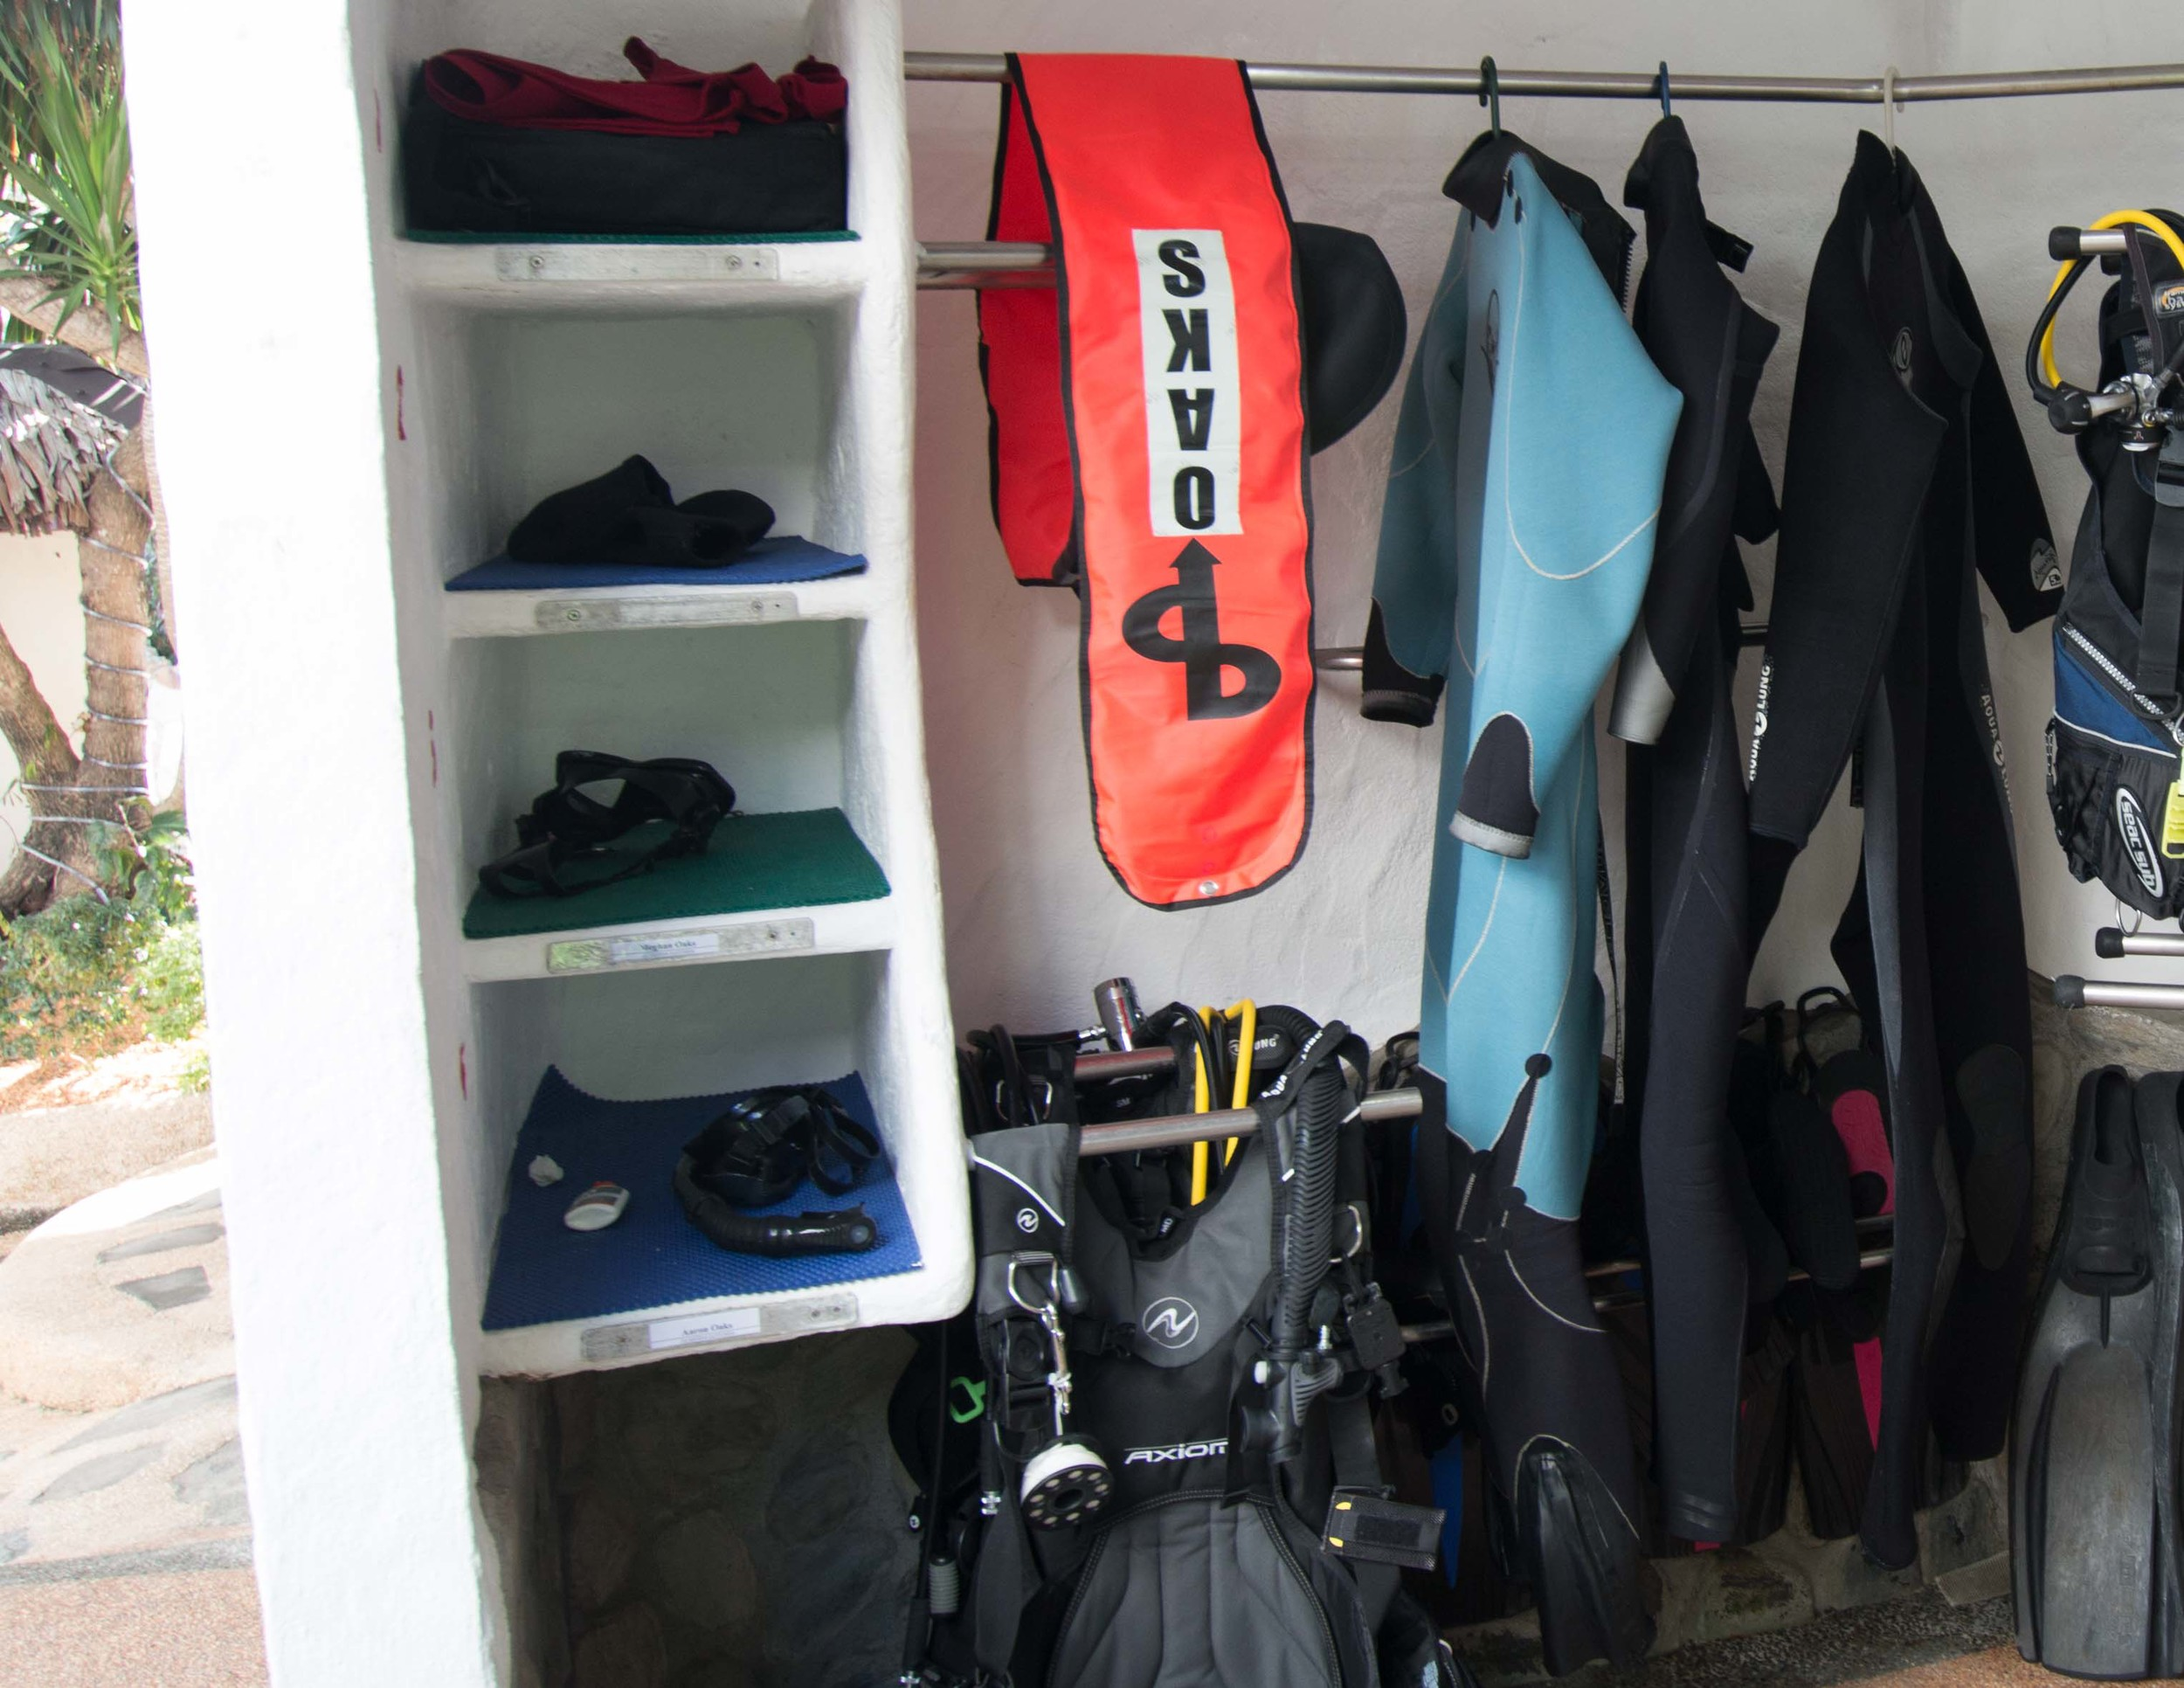 Each diver gets one of the cubbies shown here.  BC and regulator are hung on the bars.  Hangers and spots are provided to hang your wetsuit up too.